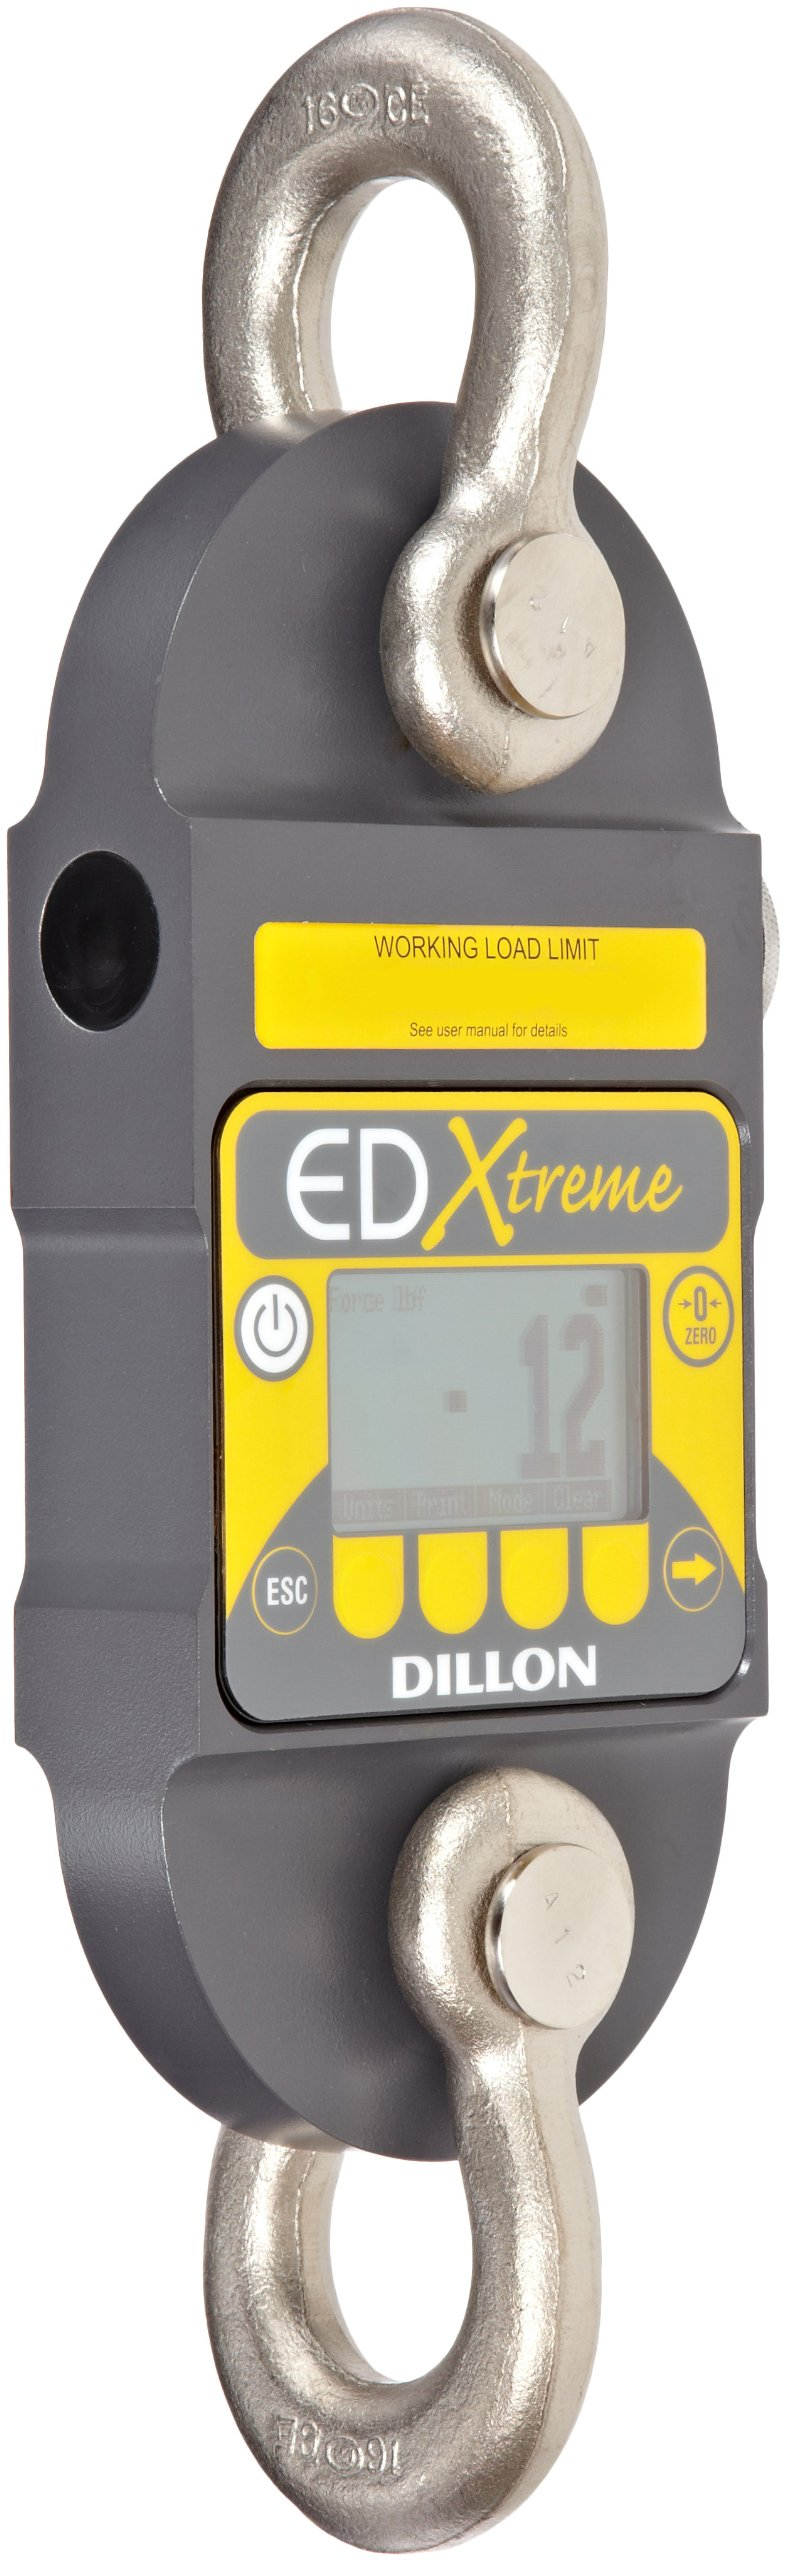 Dillon EDX-IT-S EDxtreme Dynamometer with Standard Anchor Shackle, 2500lbs Capacity, 2lbs Readability